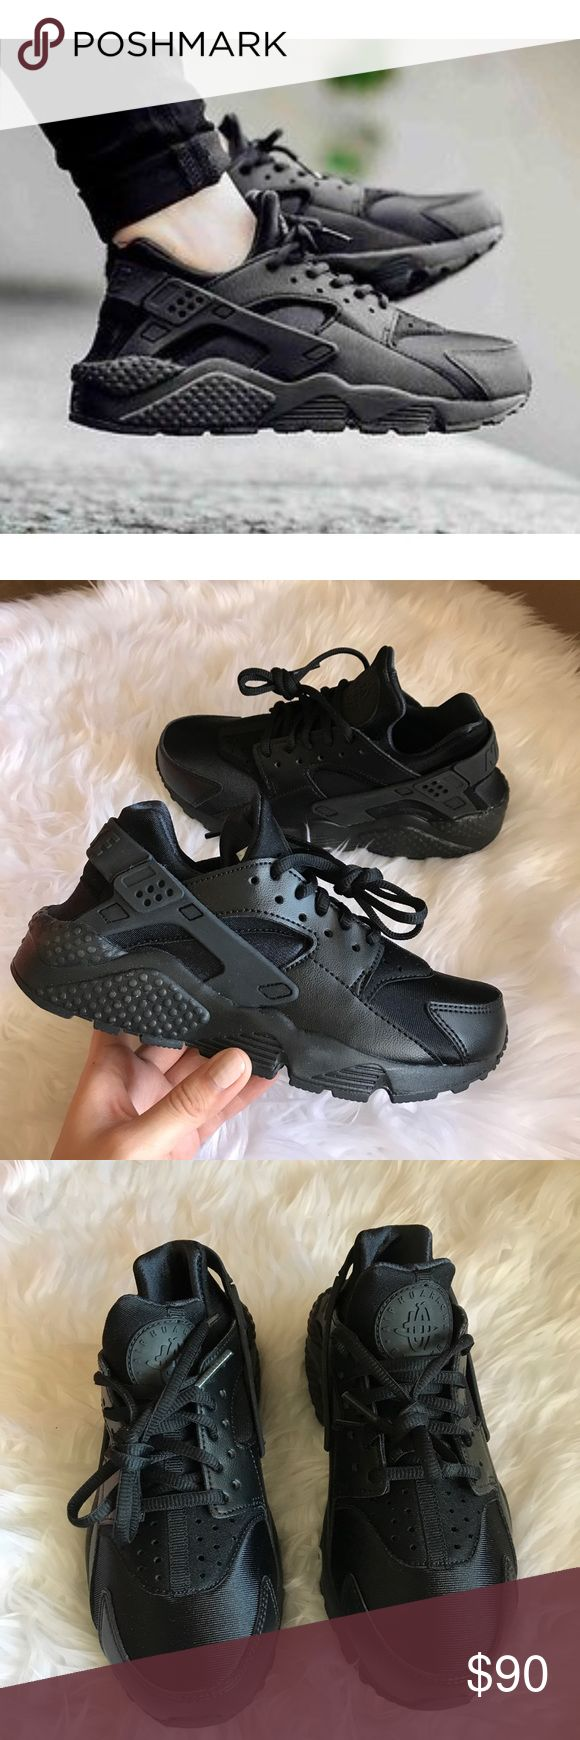 d09a2352af668 ... NIB NIKE grey pink Huarache Run GS ~ 5Y 6.5-7W brand new OFFER ME⚡ Nike  Air Huarache Run Triple Black Brand new with the box but ...